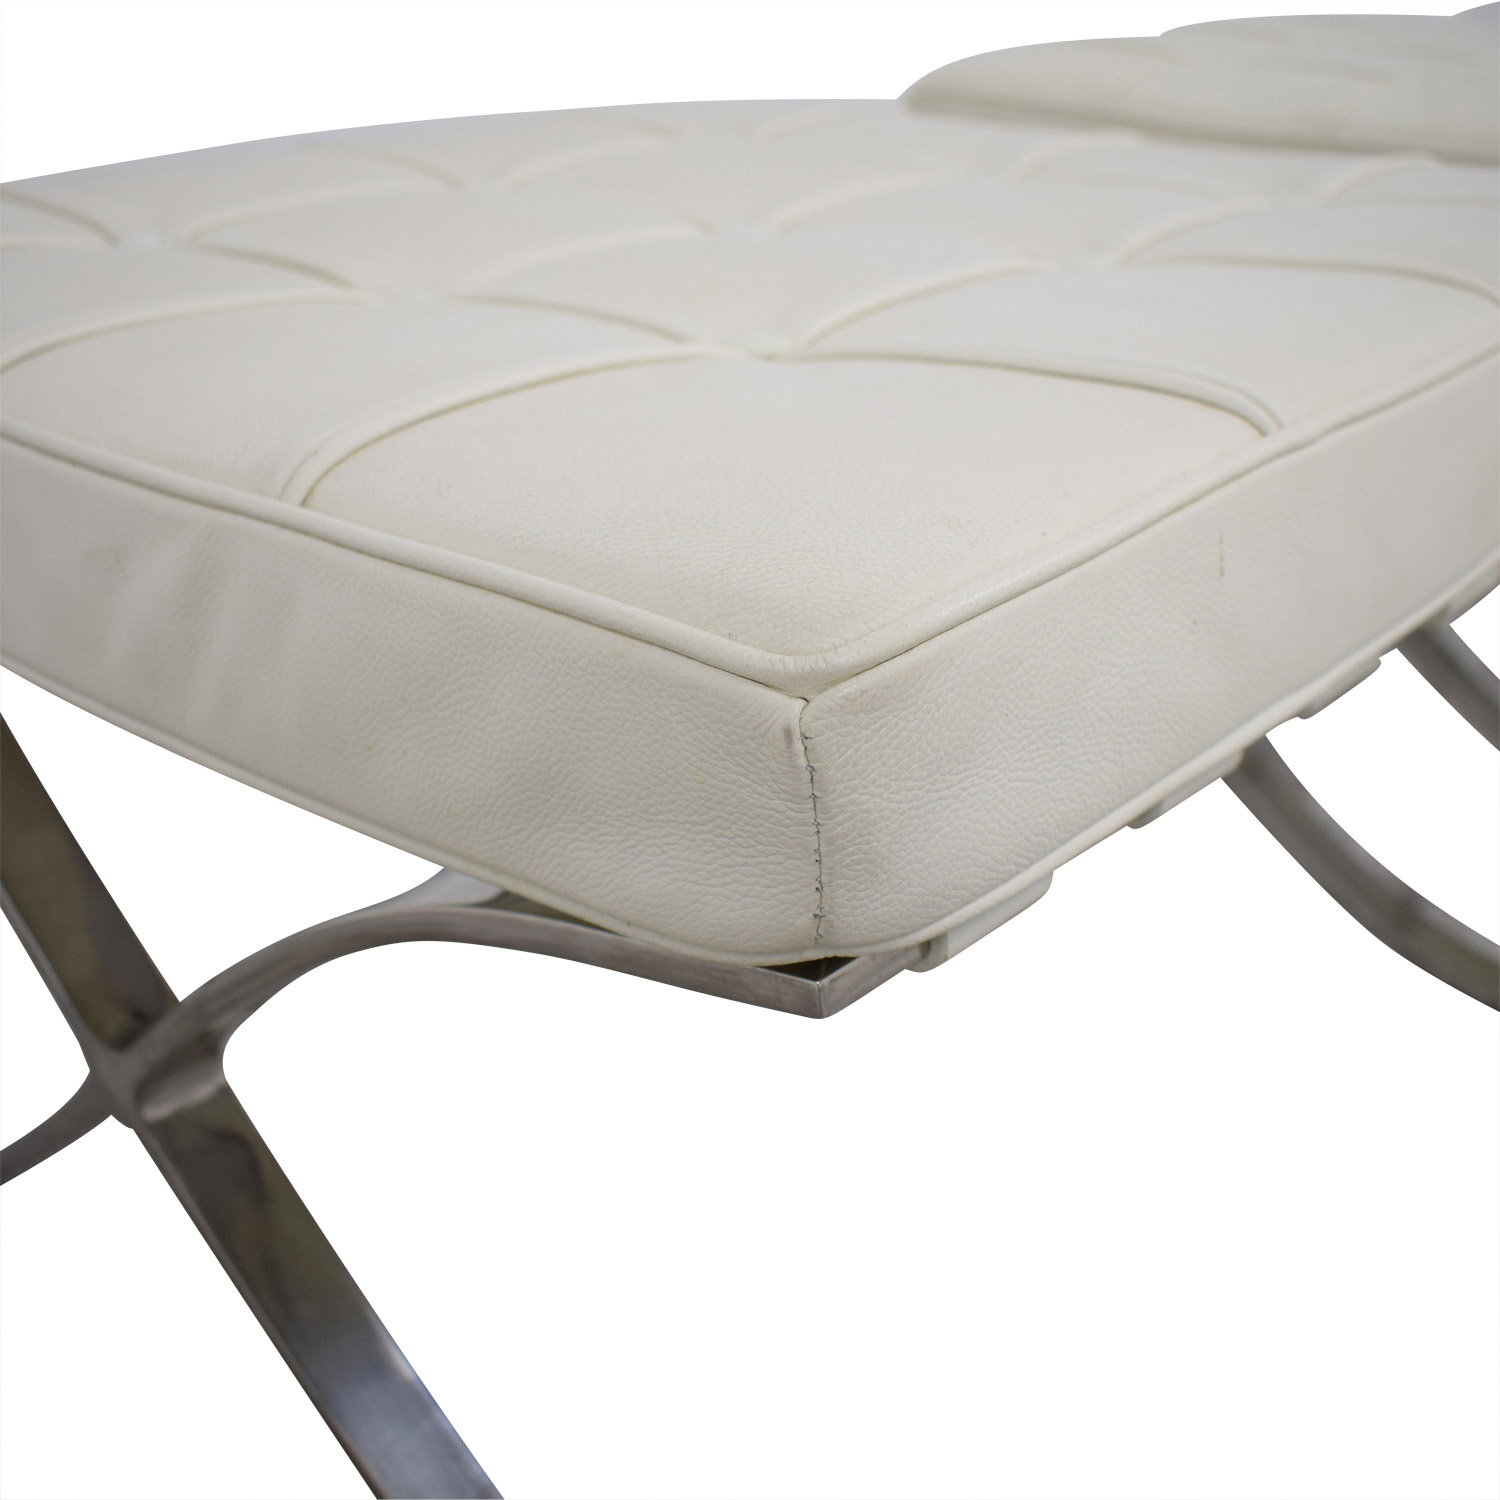 79 Off Barcelona Style White Tufted Leather Ottomans Chairs